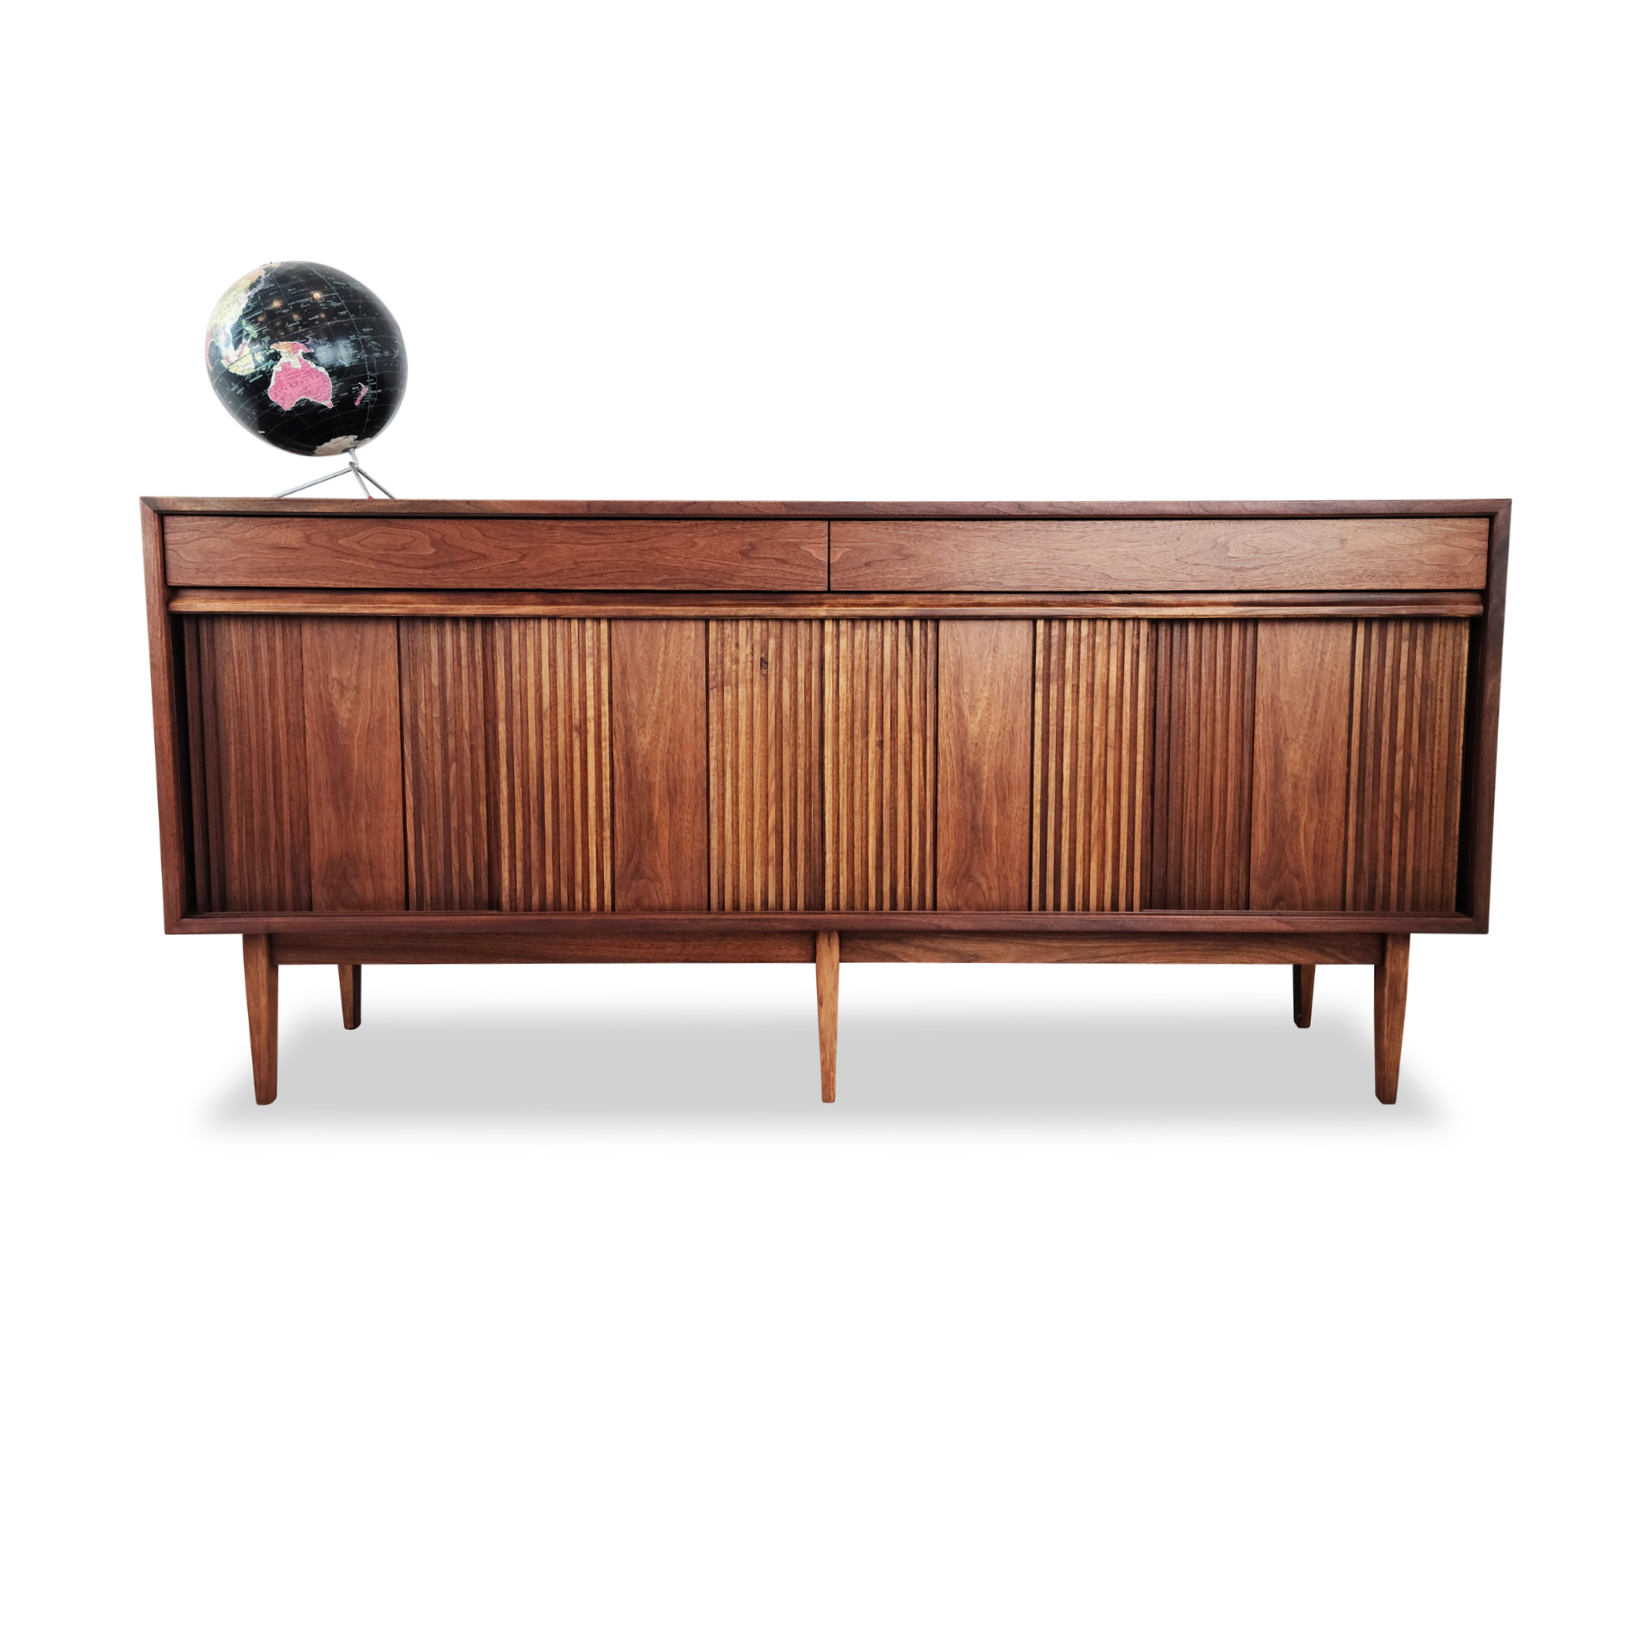 Walnut Sideboard by Honderich